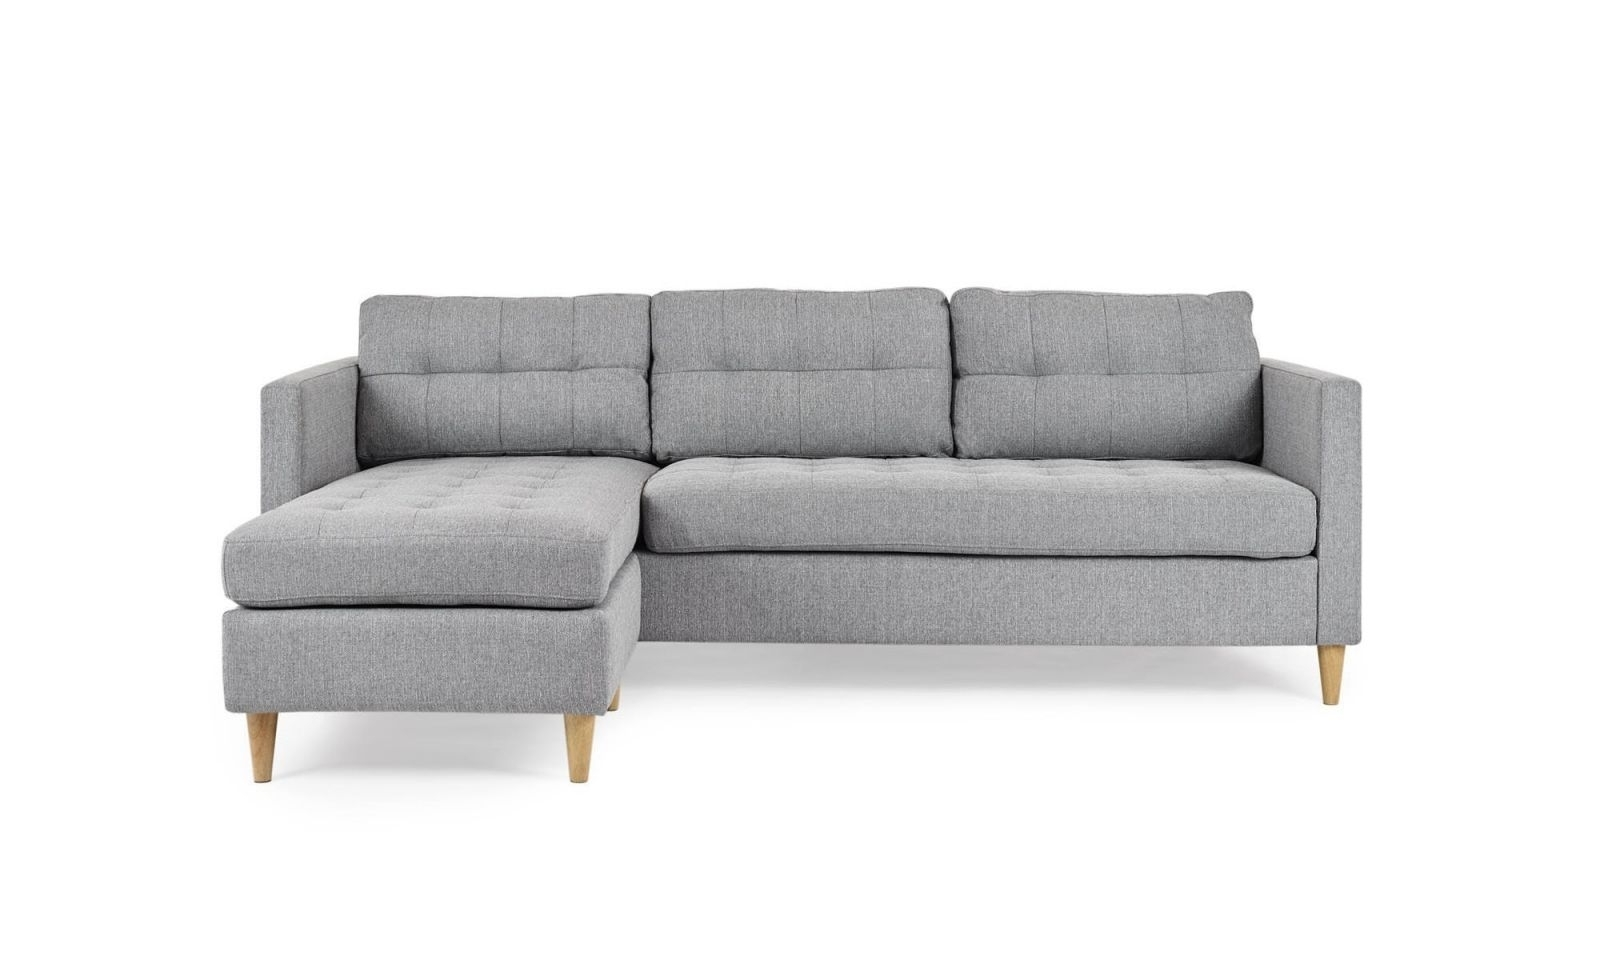 Gray Chaise Sofas Throughout Newest Chaise Corner Sofas #3 Alexis Interchangeable Reversible Chaise (View 4 of 15)